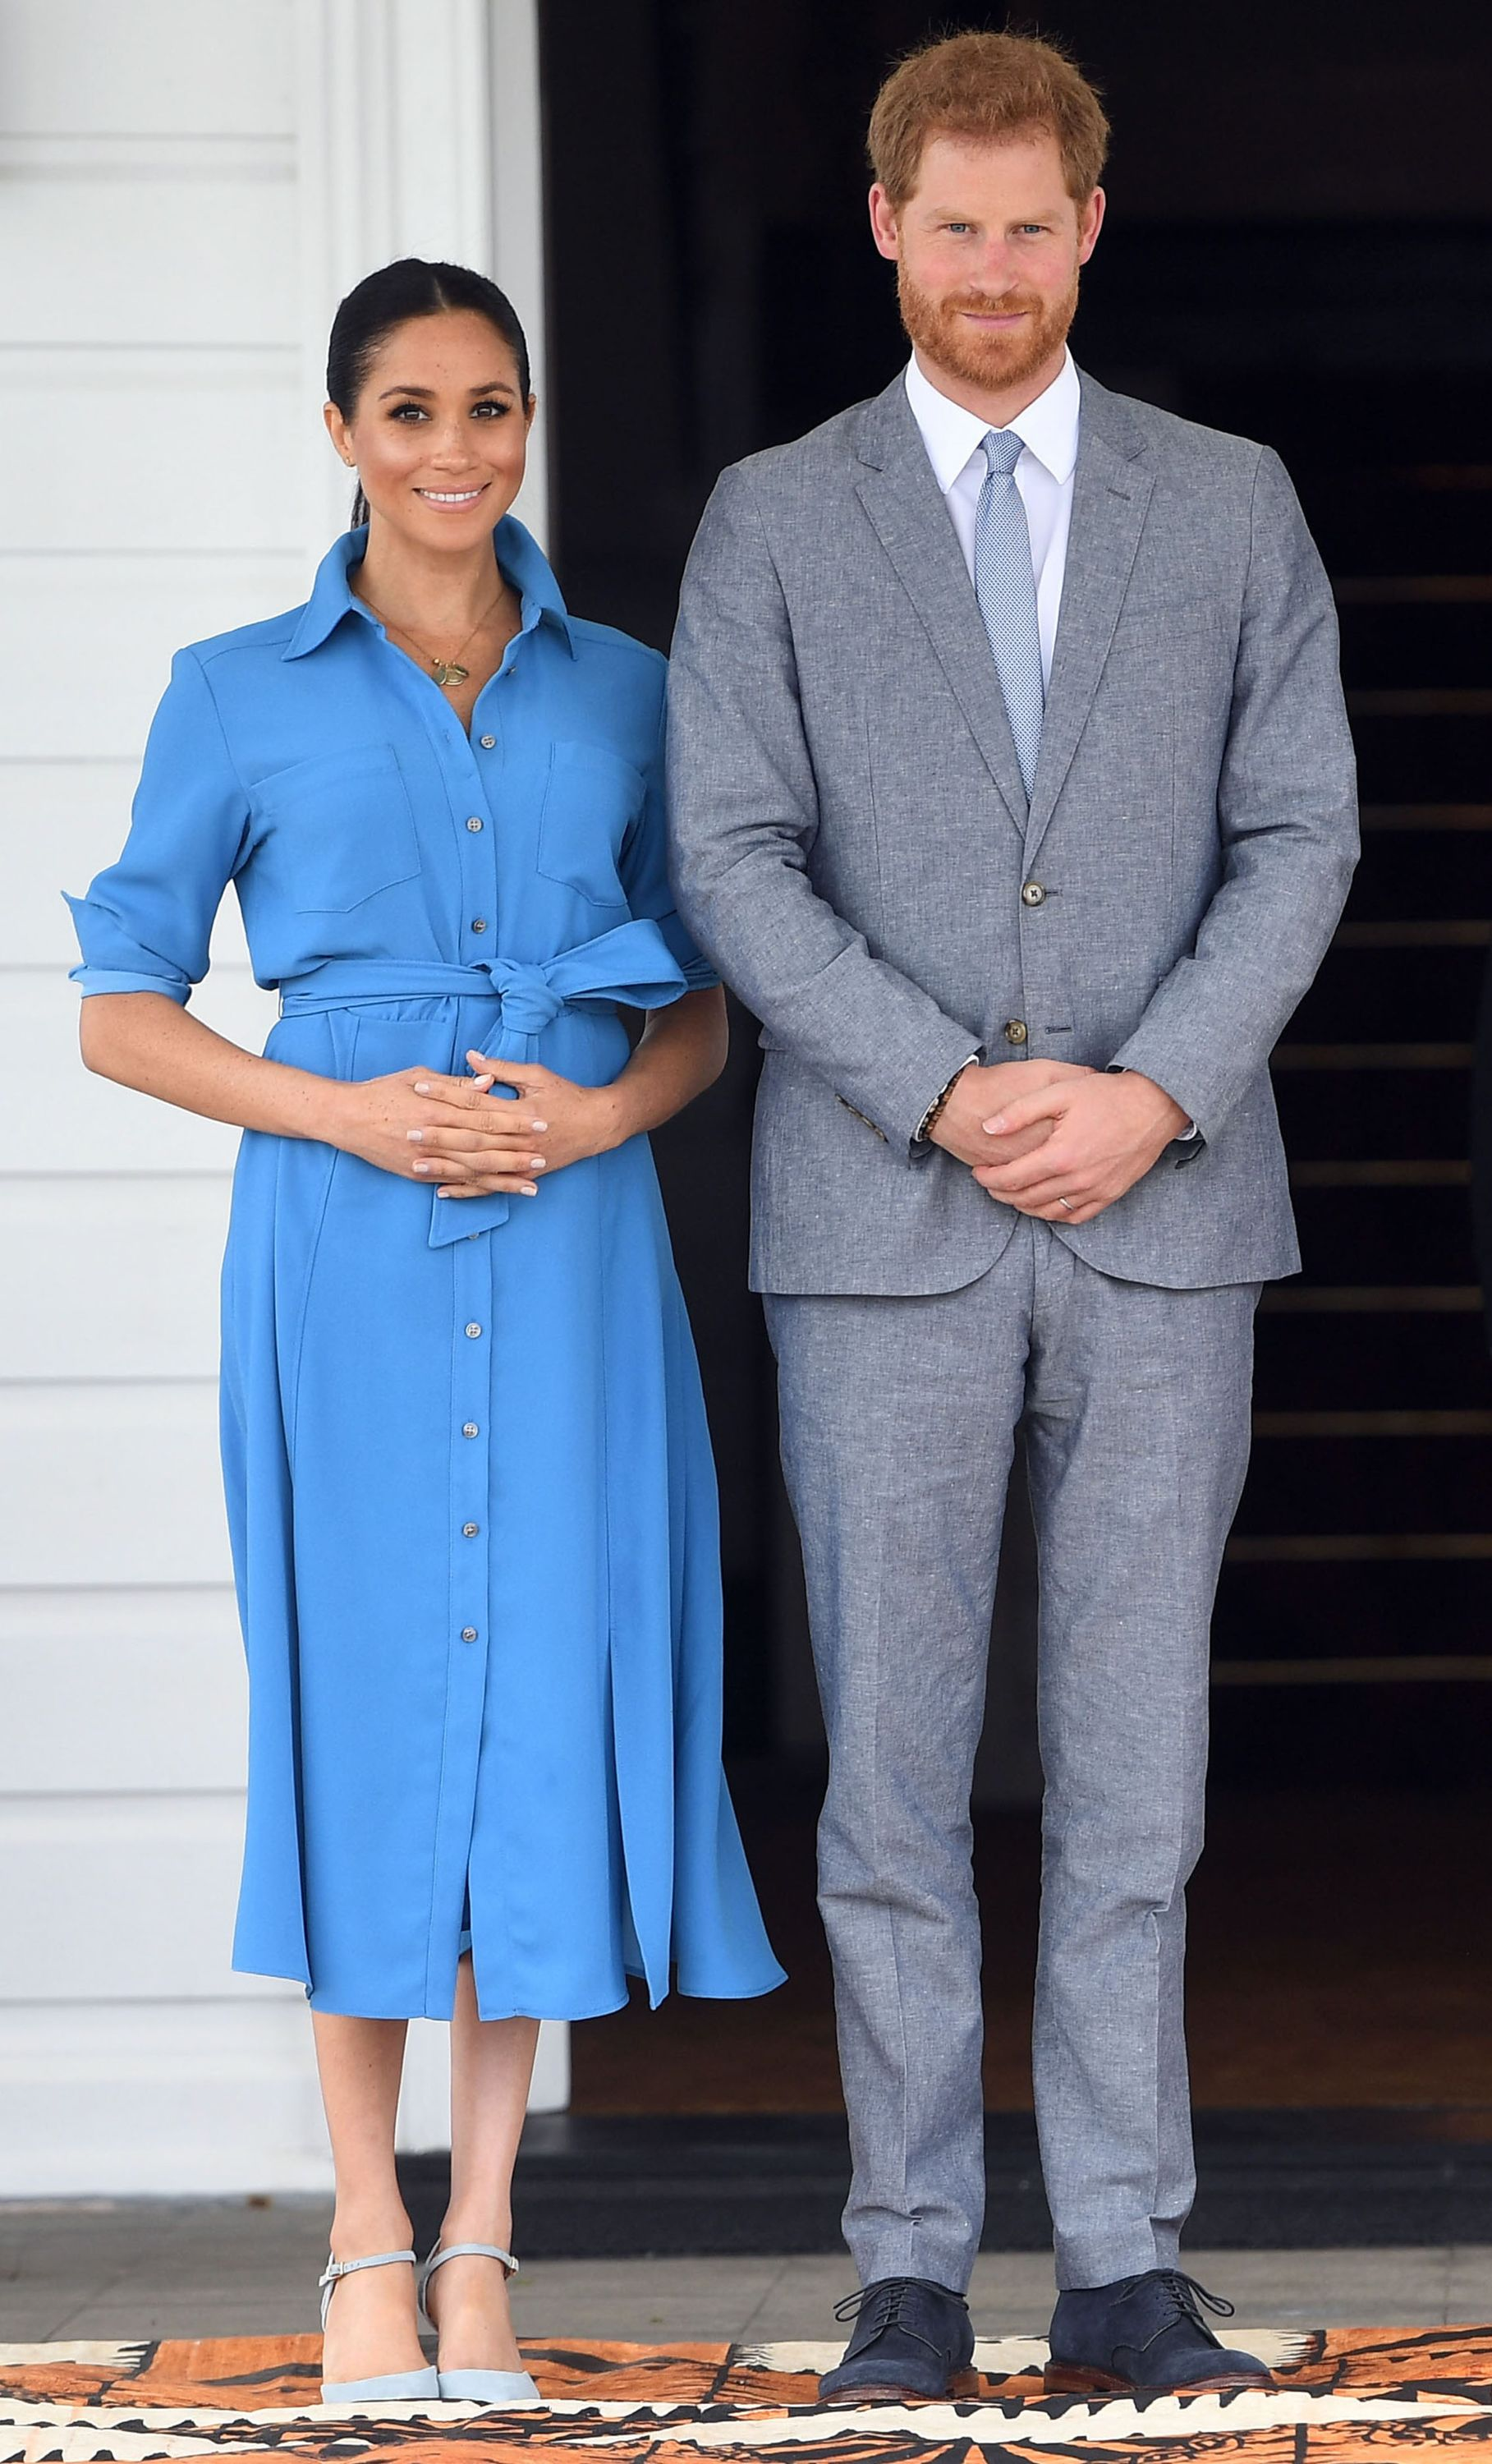 The Duchess changed for her afternoon engagements into a blue dress by Veronica Beard paired with blue heels by Banana Republic. SHOP NOW Madison 12-Hour Side Cut-Out Pump, $89.50